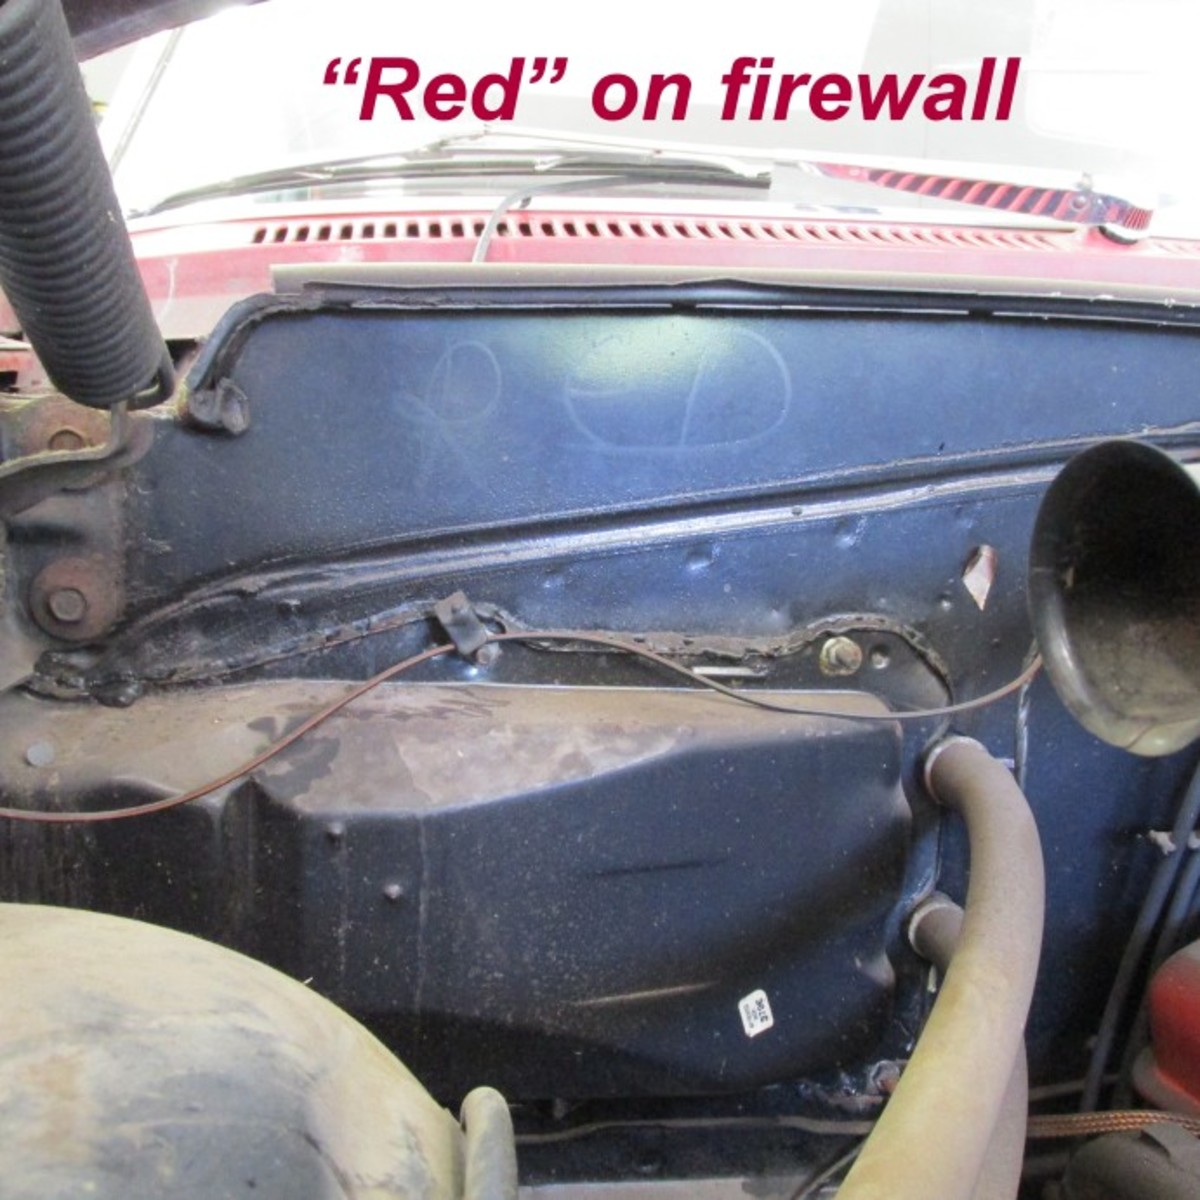 """Leidich learned from former GM employees who assembled Chevrolets in GM's Janesville, Wis., plant that the """"Red"""" notation on the firewall indicated the interior color to be installed in the car."""